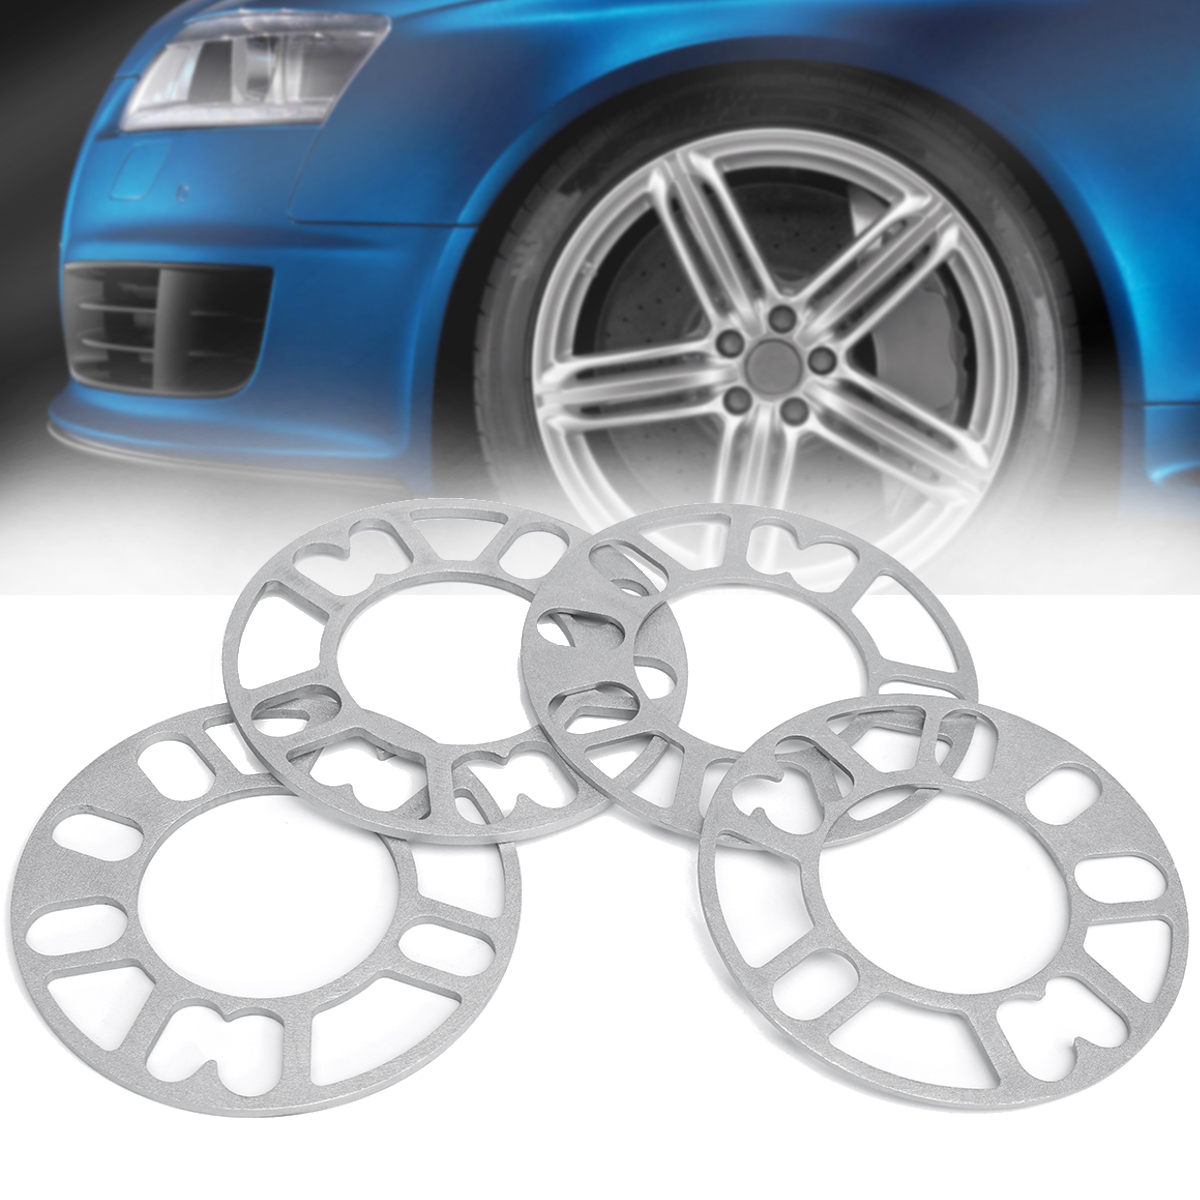 4pcs Car <font><b>Wheel</b></font> <font><b>Spacer</b></font> Shims Adjustable 4x98 4x100 4x108 4x114.3 5x100 5x105 5x108 5x112 <font><b>5x114.3</b></font> 5x120 image